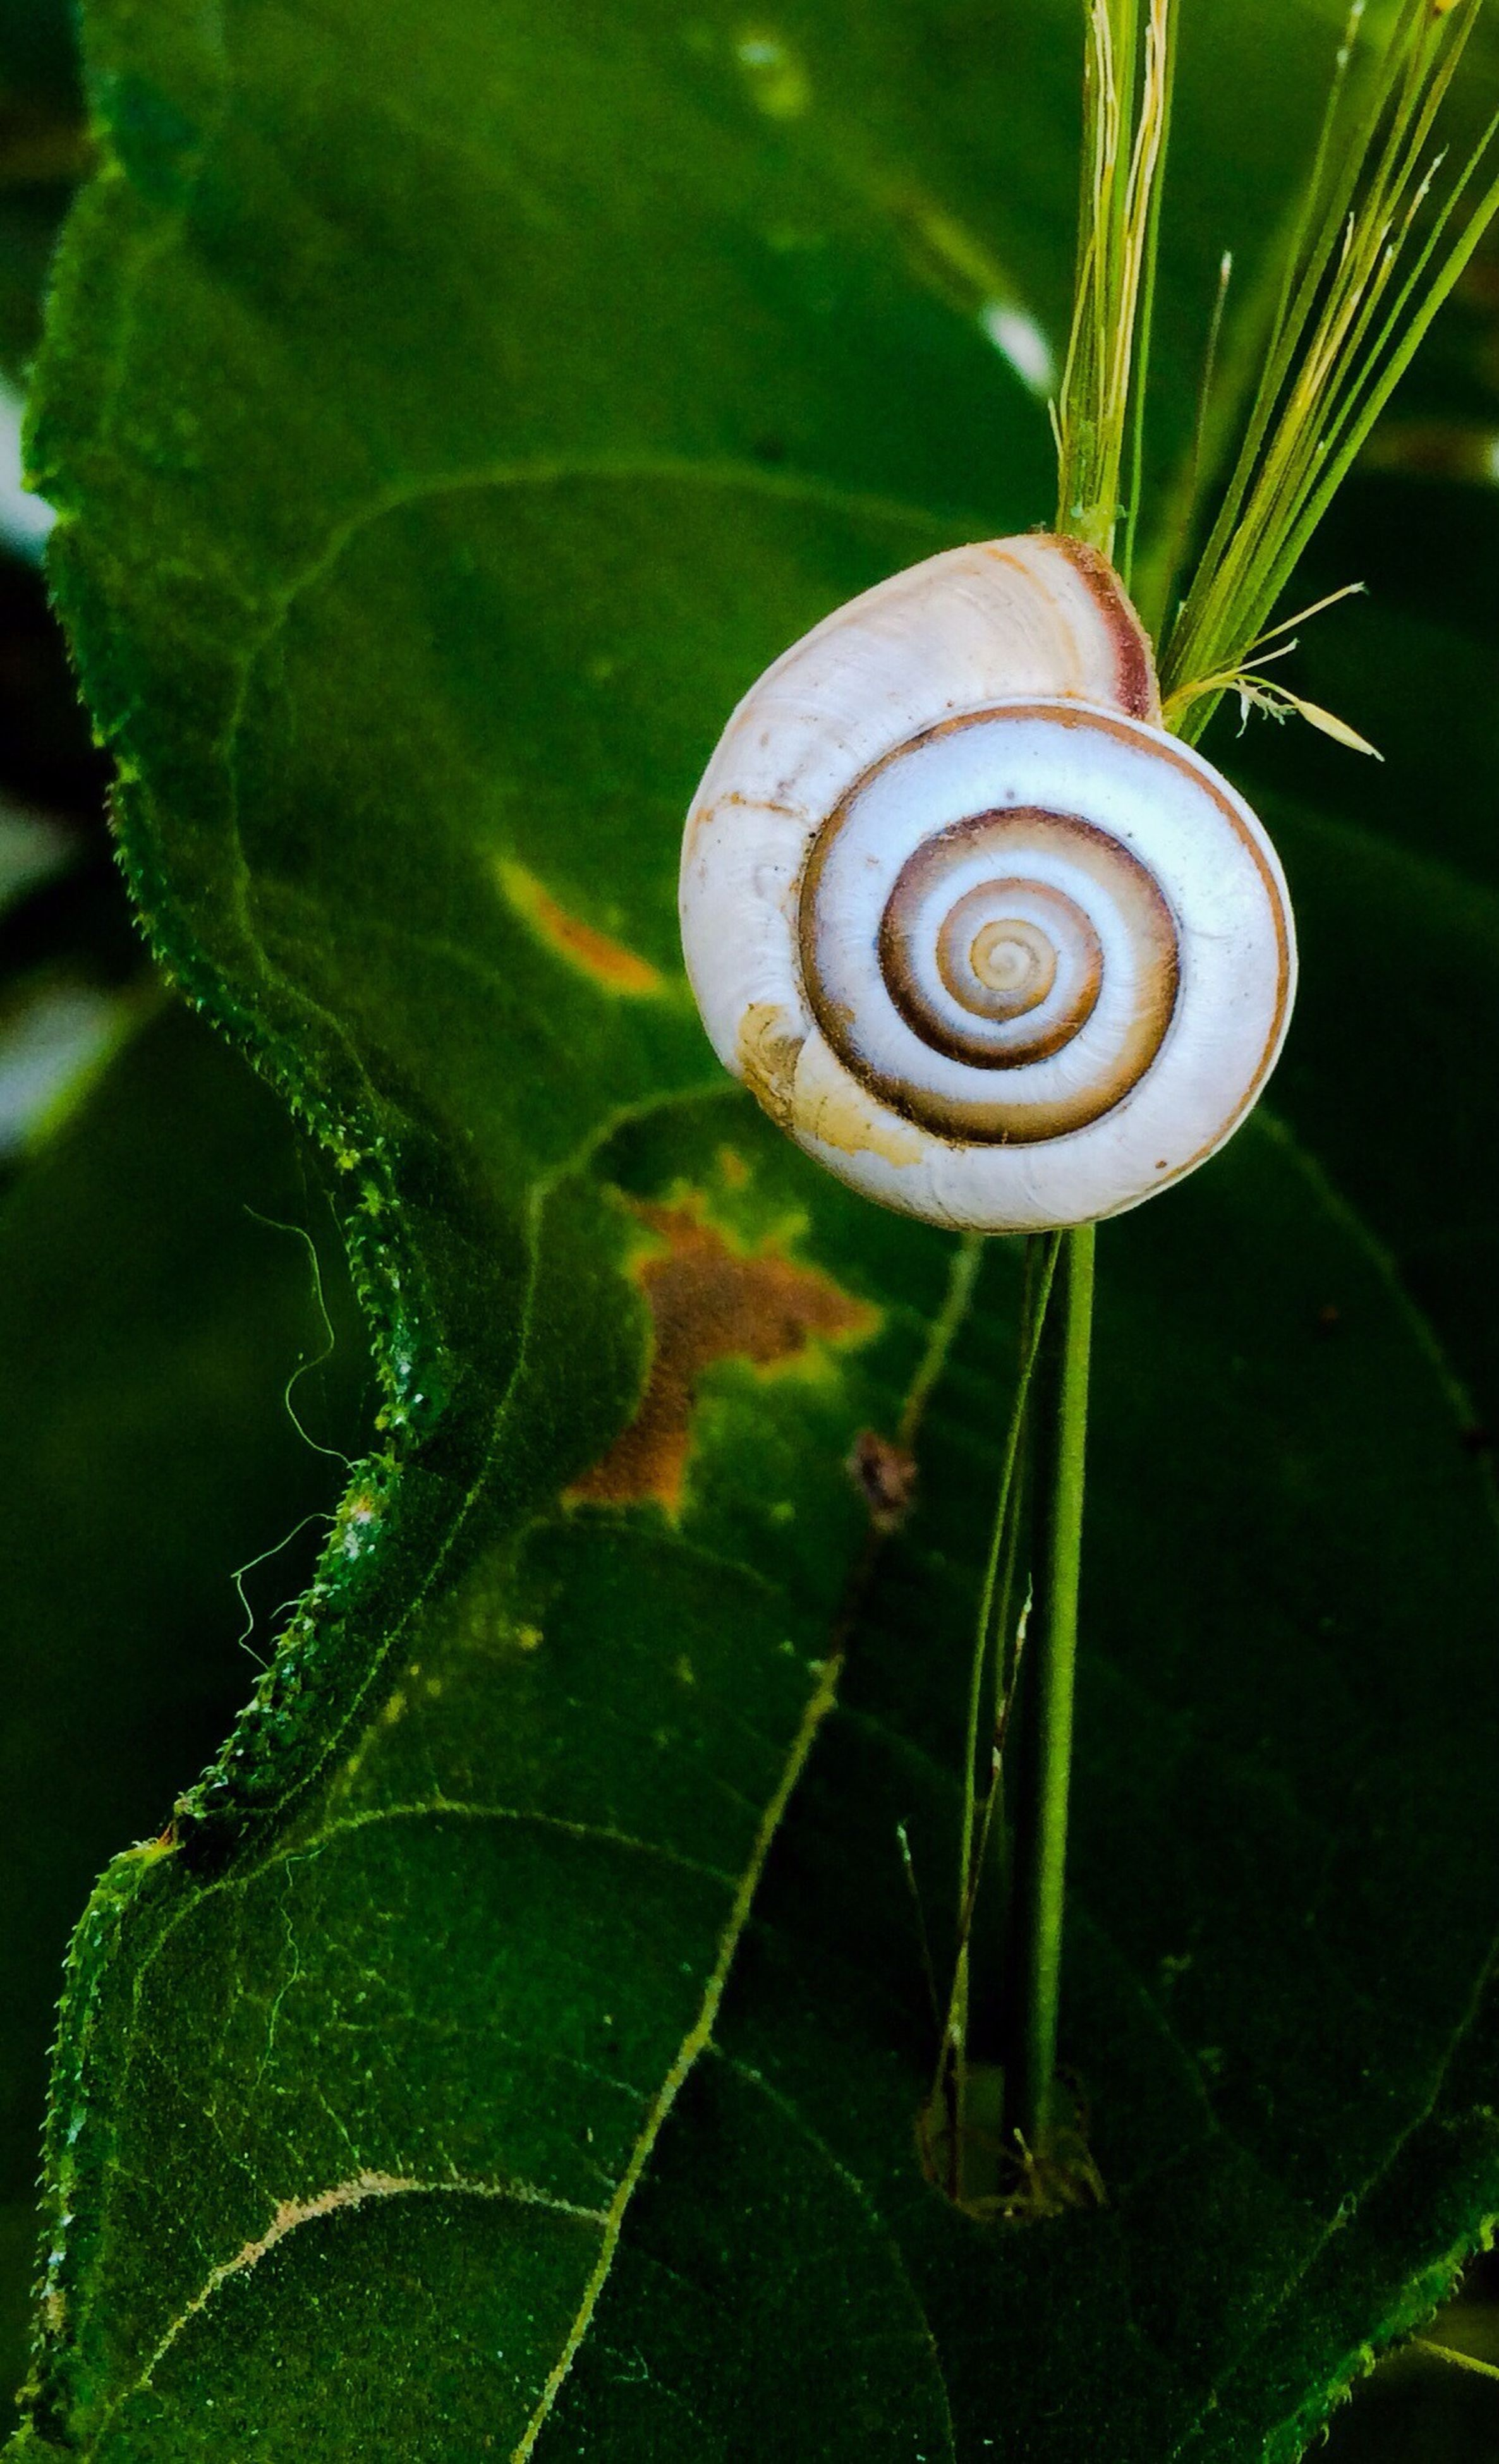 close-up, leaf, snail, growth, plant, green color, focus on foreground, spiral, nature, animal shell, beauty in nature, selective focus, outdoors, no people, fragility, high angle view, freshness, one animal, day, natural pattern